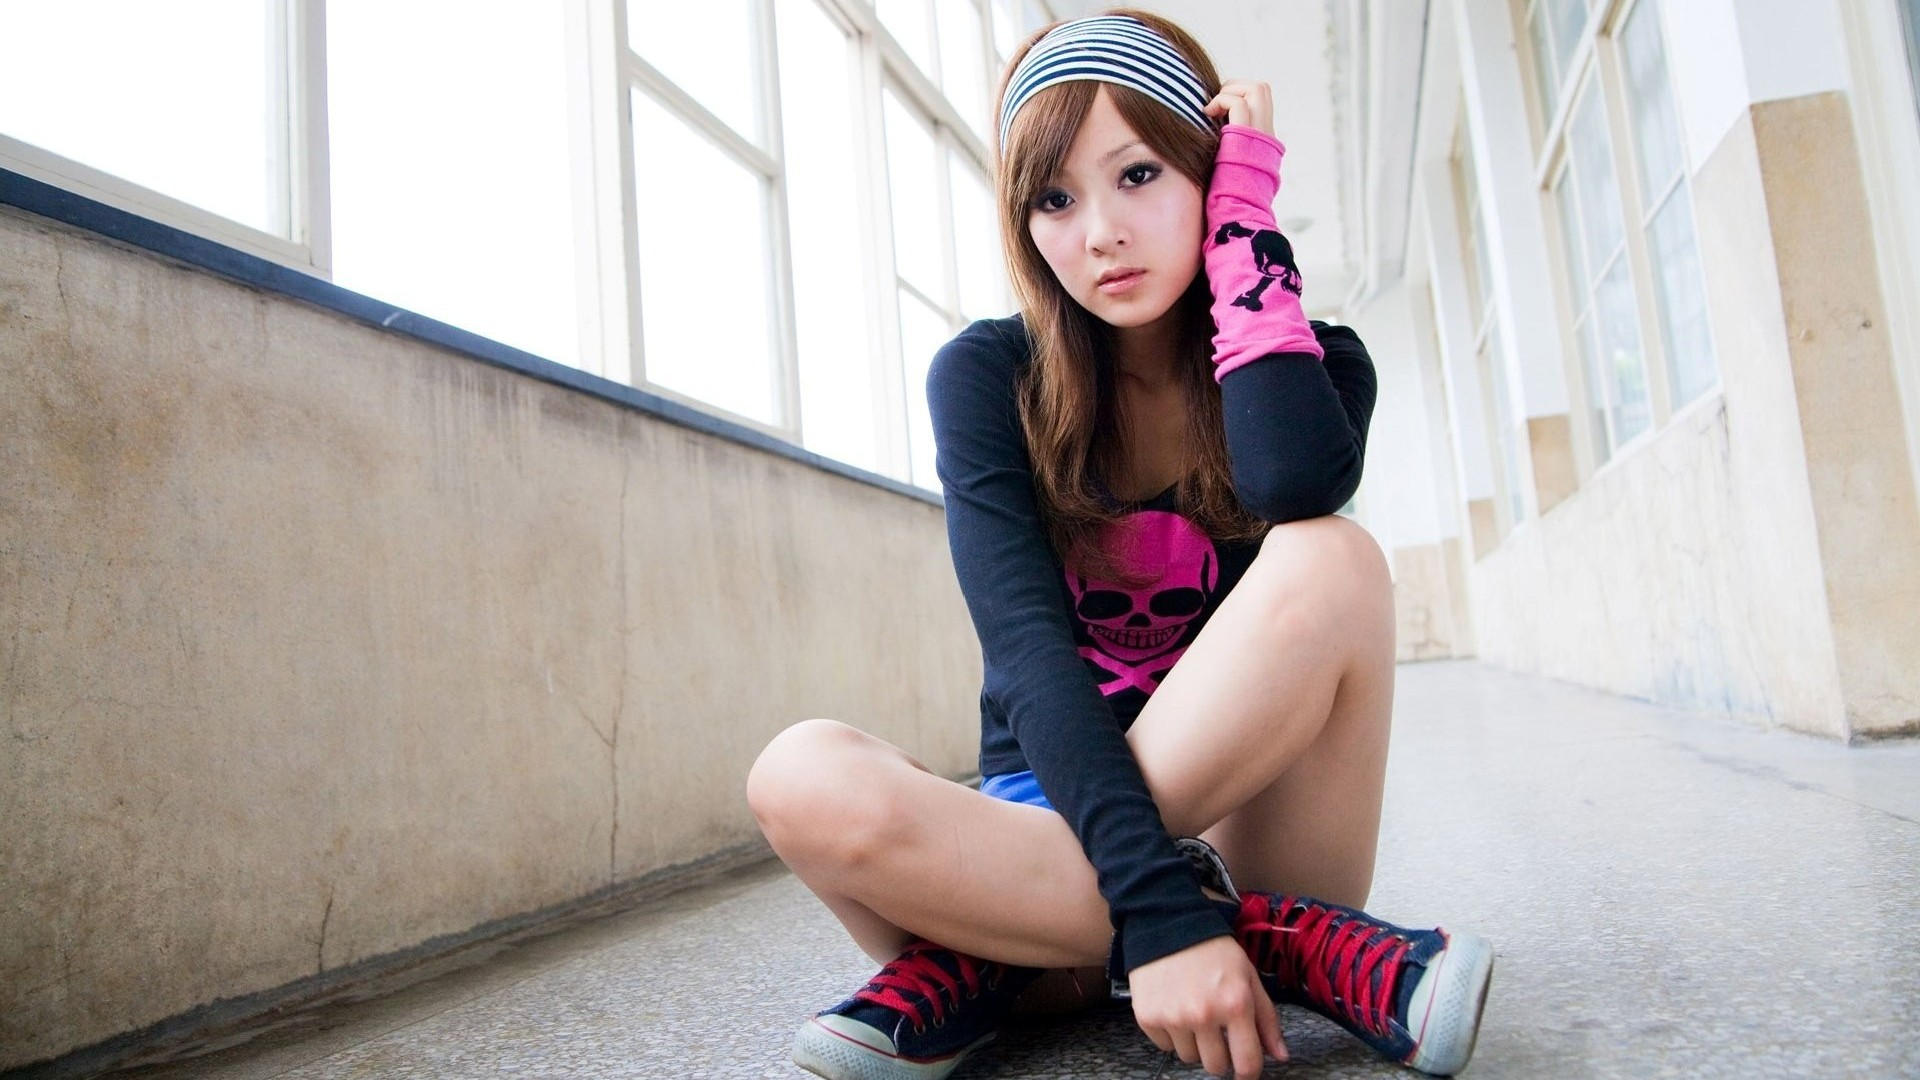 Have sexy asian girls wallpapers fill